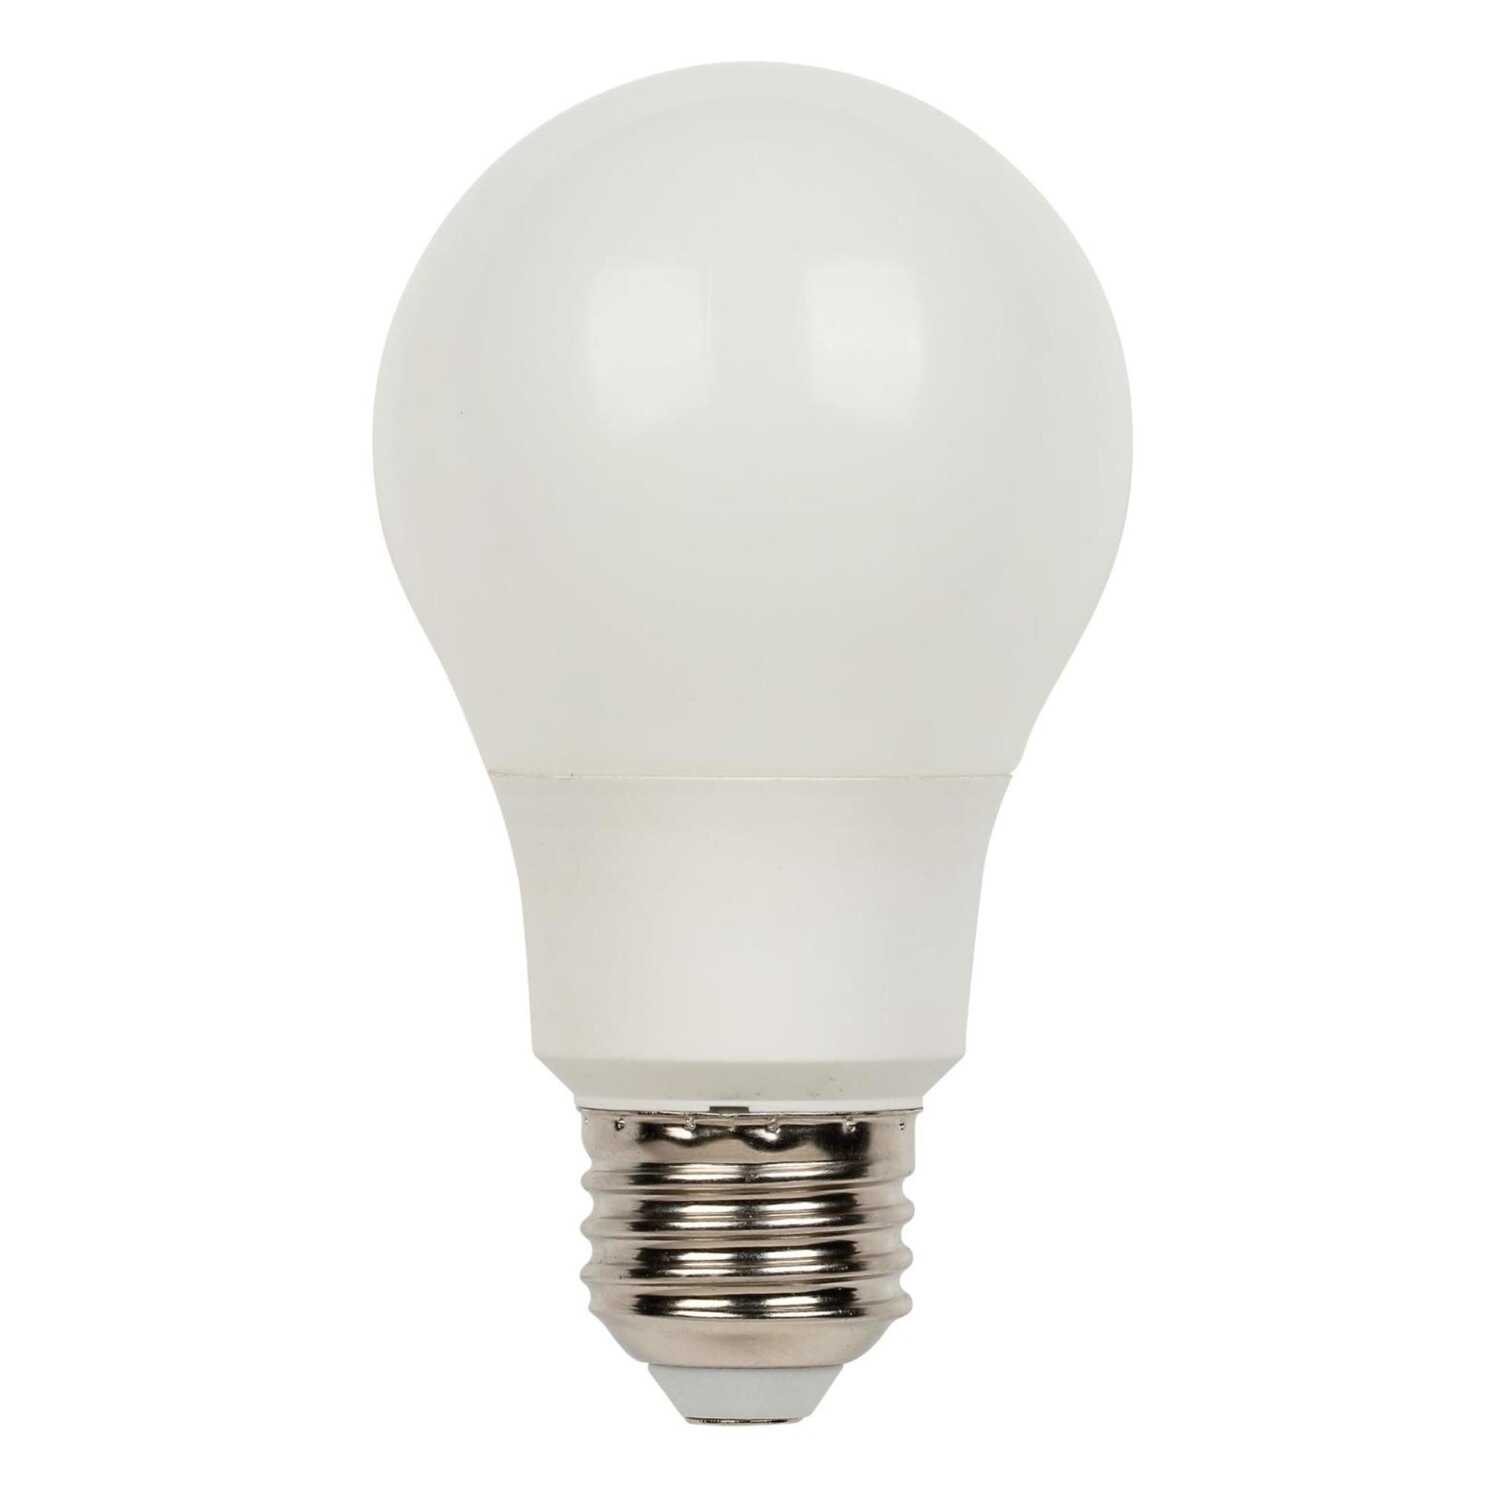 Westinghouse  A19  E26 (Medium)  LED Bulb  Daylight  40 Watt Equivalence 1 pk